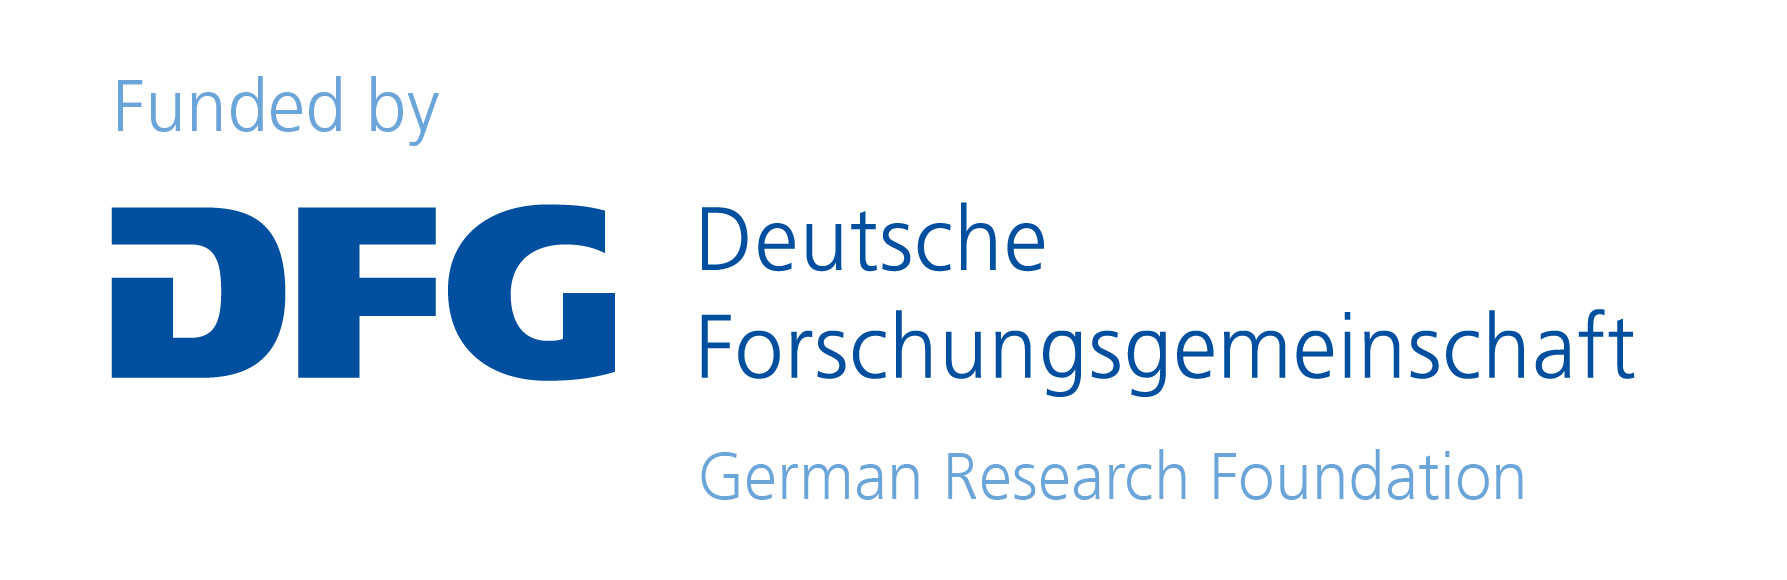 Funded By DFG, Deutsche Forschungsgemeinschaft, German Research Foundation.